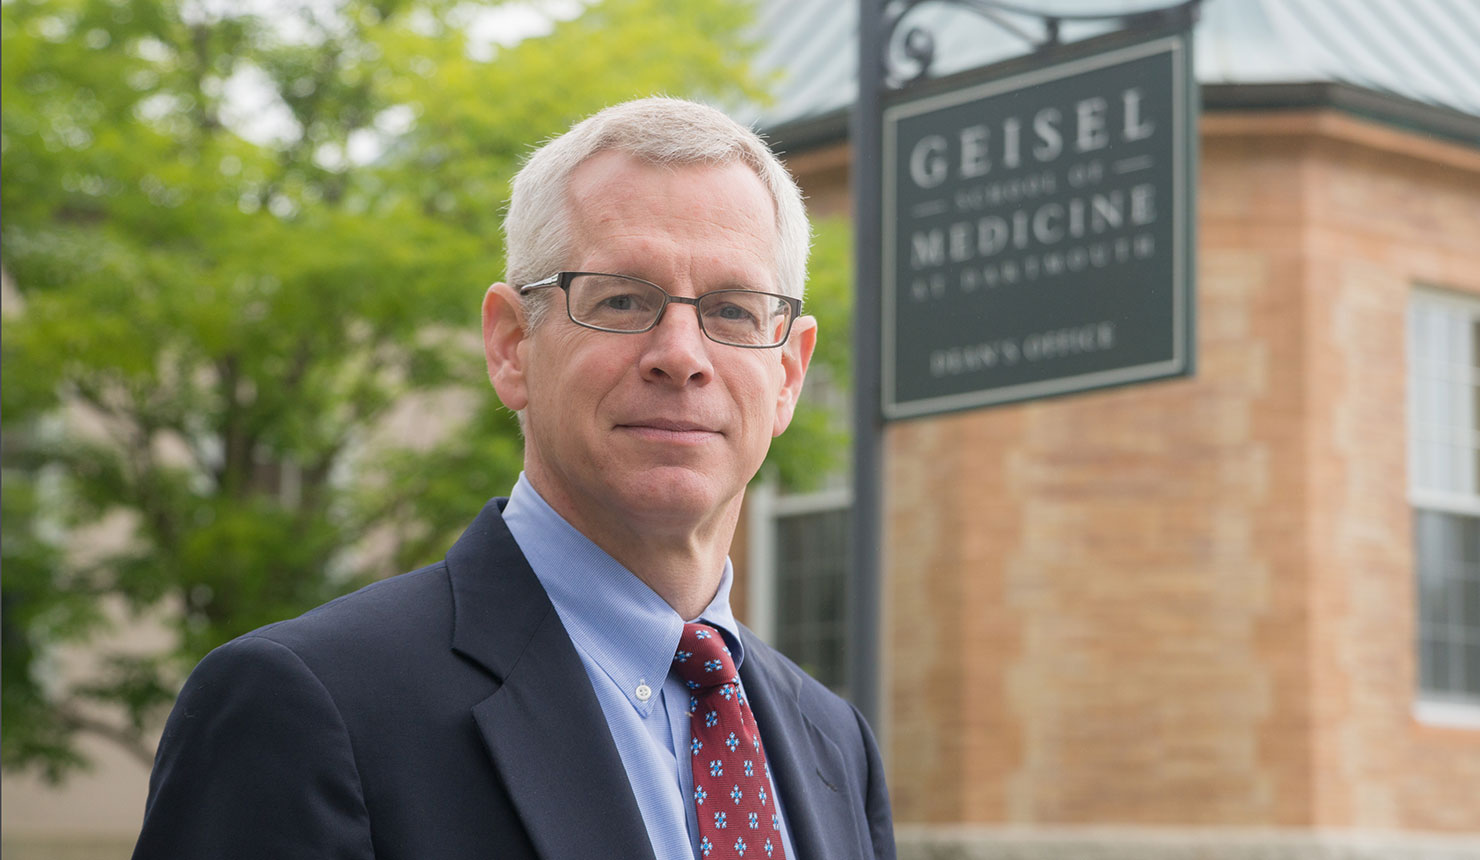 Duane Compton Named Dean of the Geisel School of Medicine